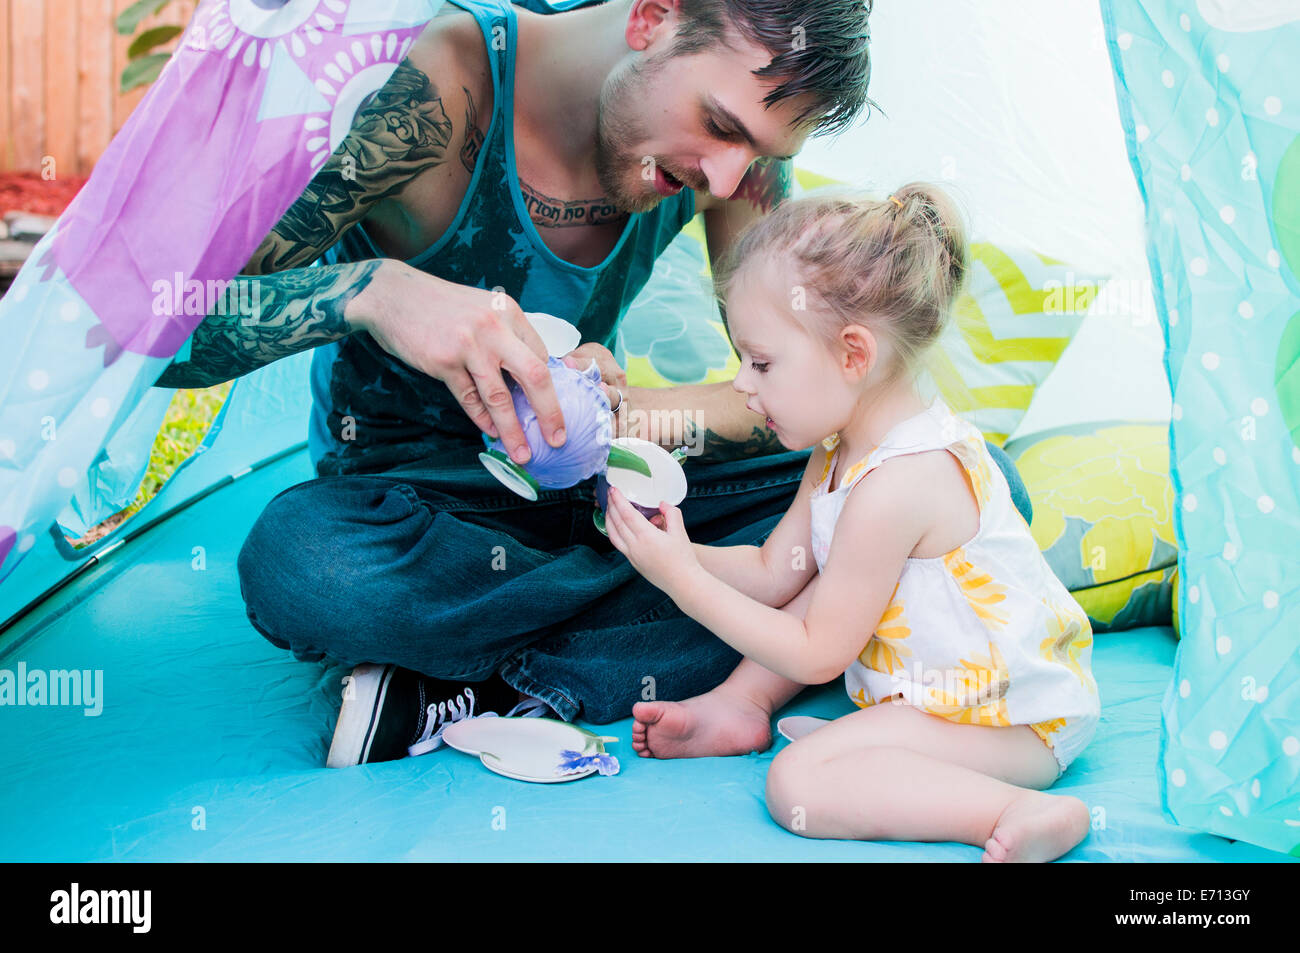 Young man and toddler daughter playing with teacup in tent - Stock Image